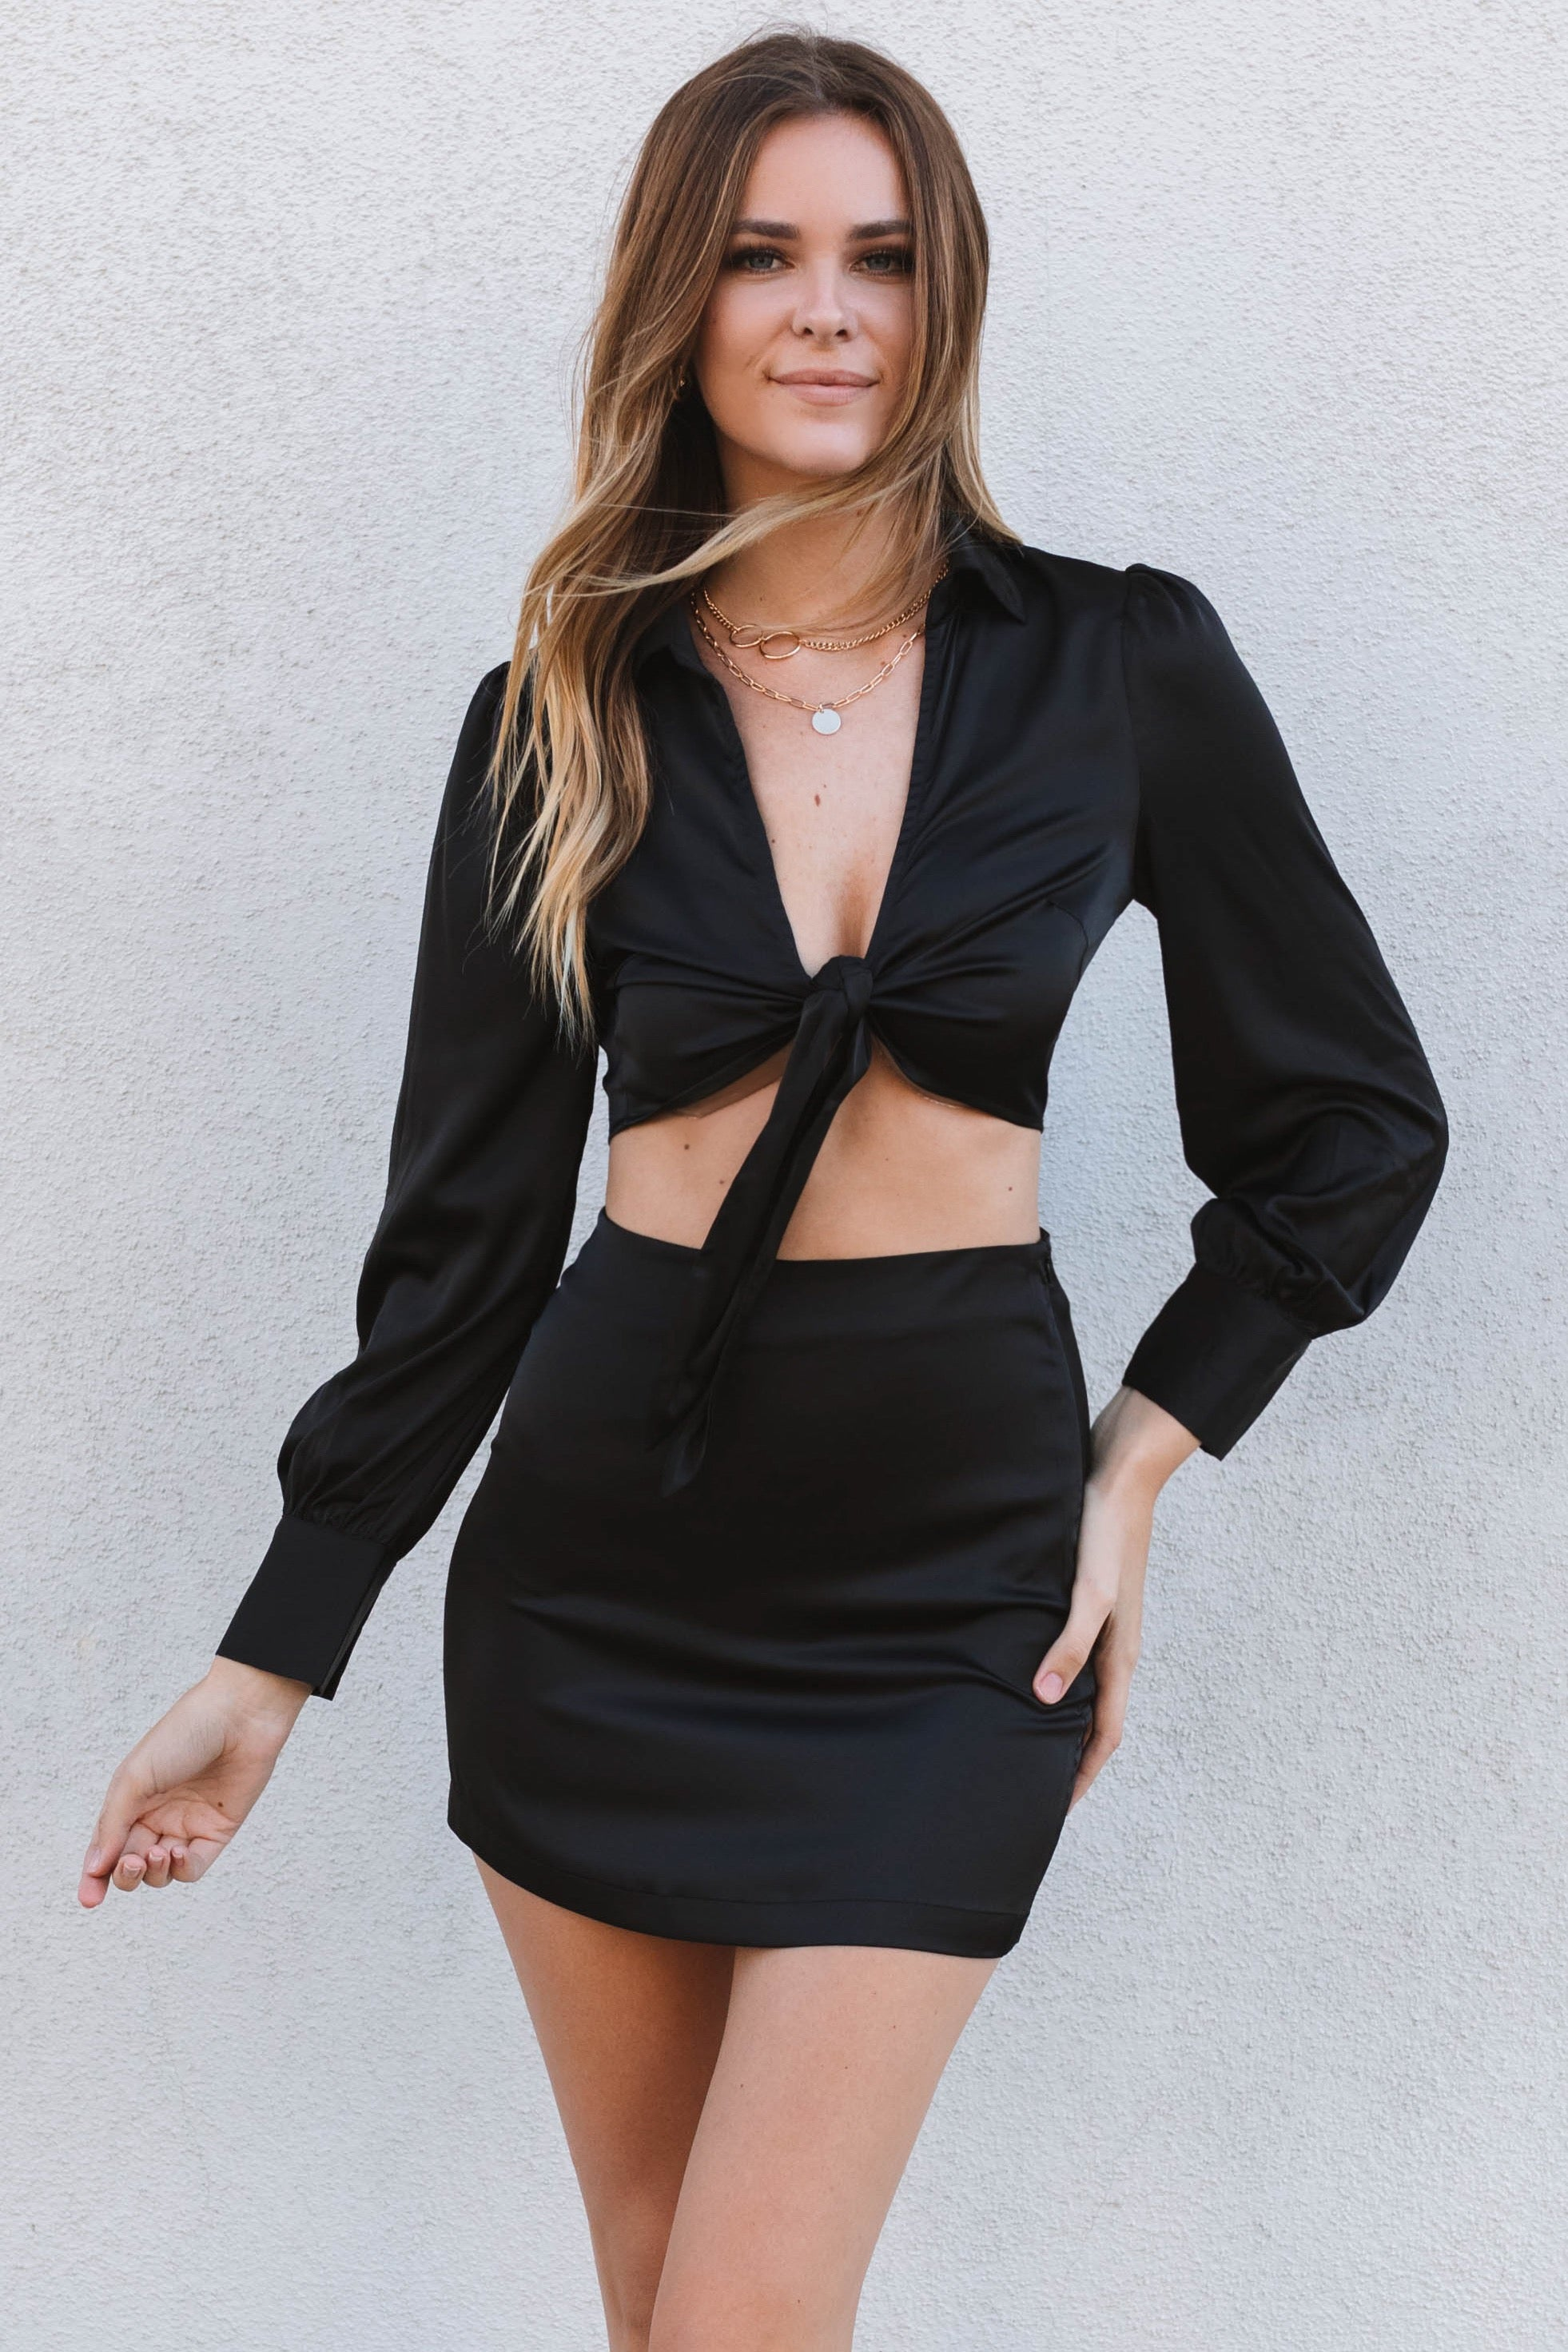 We Belong Together Dress Set-Black